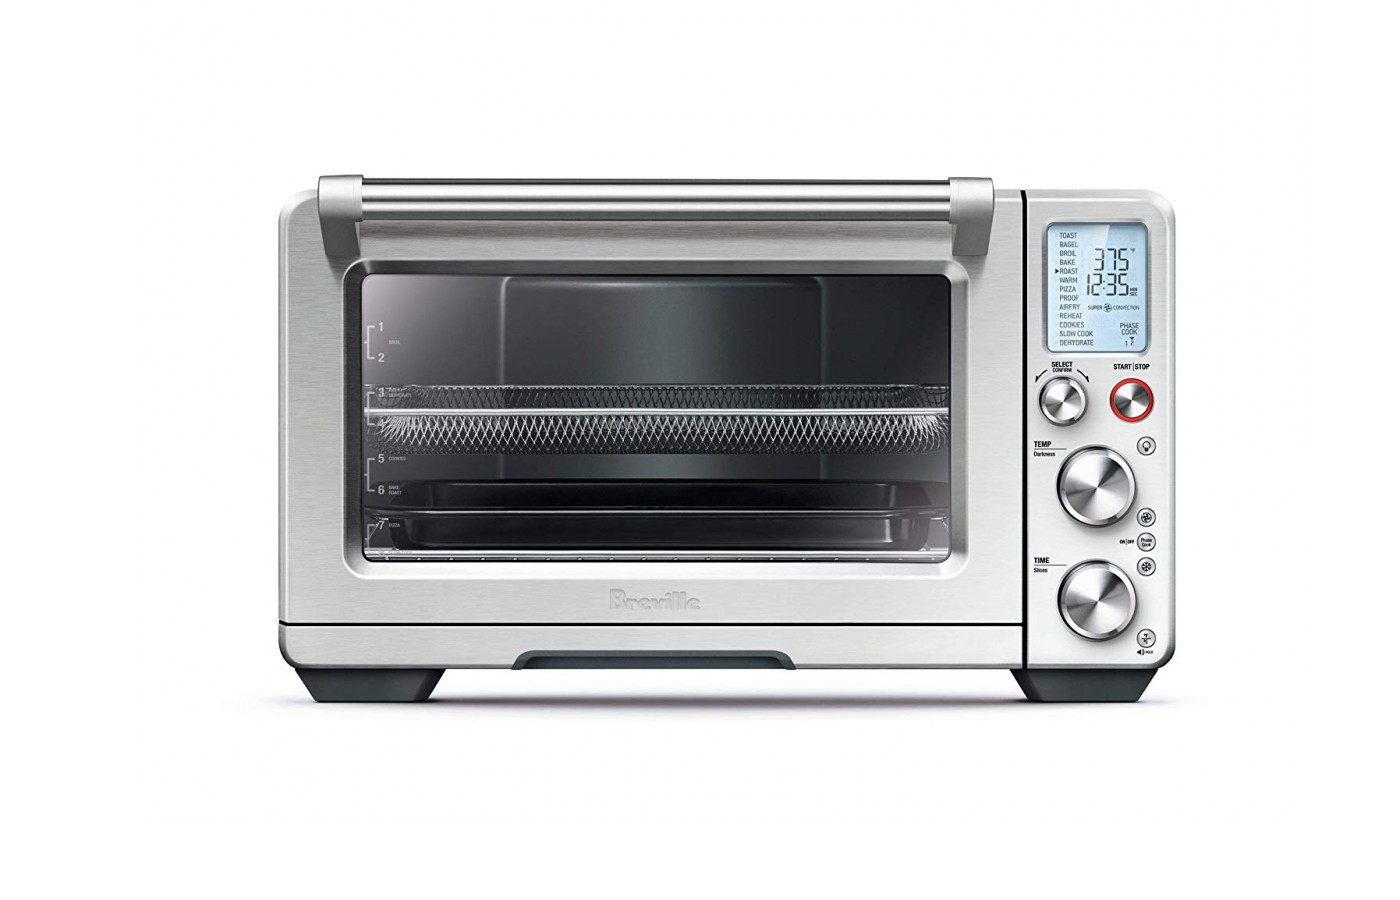 The oven has 13 cooking settings.